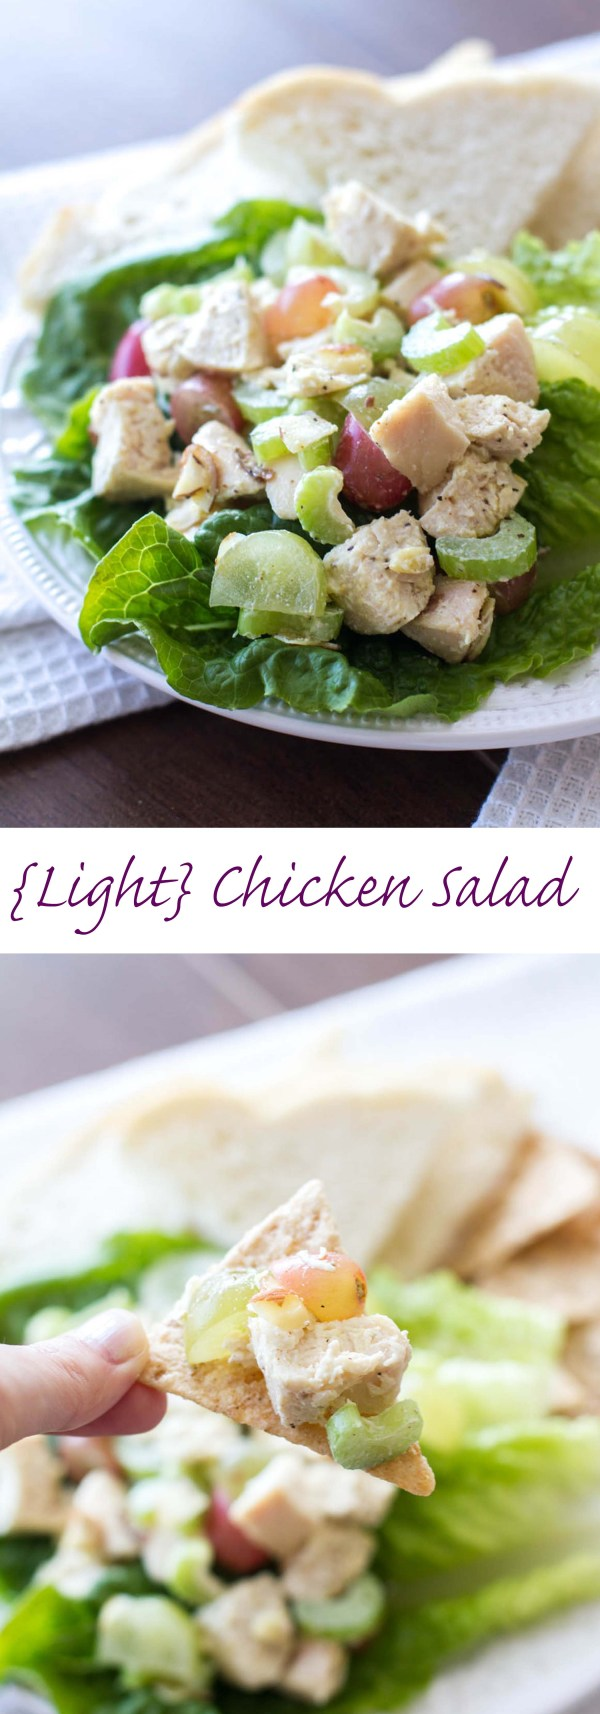 Light and Healthy Chicken Salad Recipe ~ This quick and easy chicken salad recipe is low-calorie, can be made ahead of time, and perfect on a sandwich or as an appetizer!